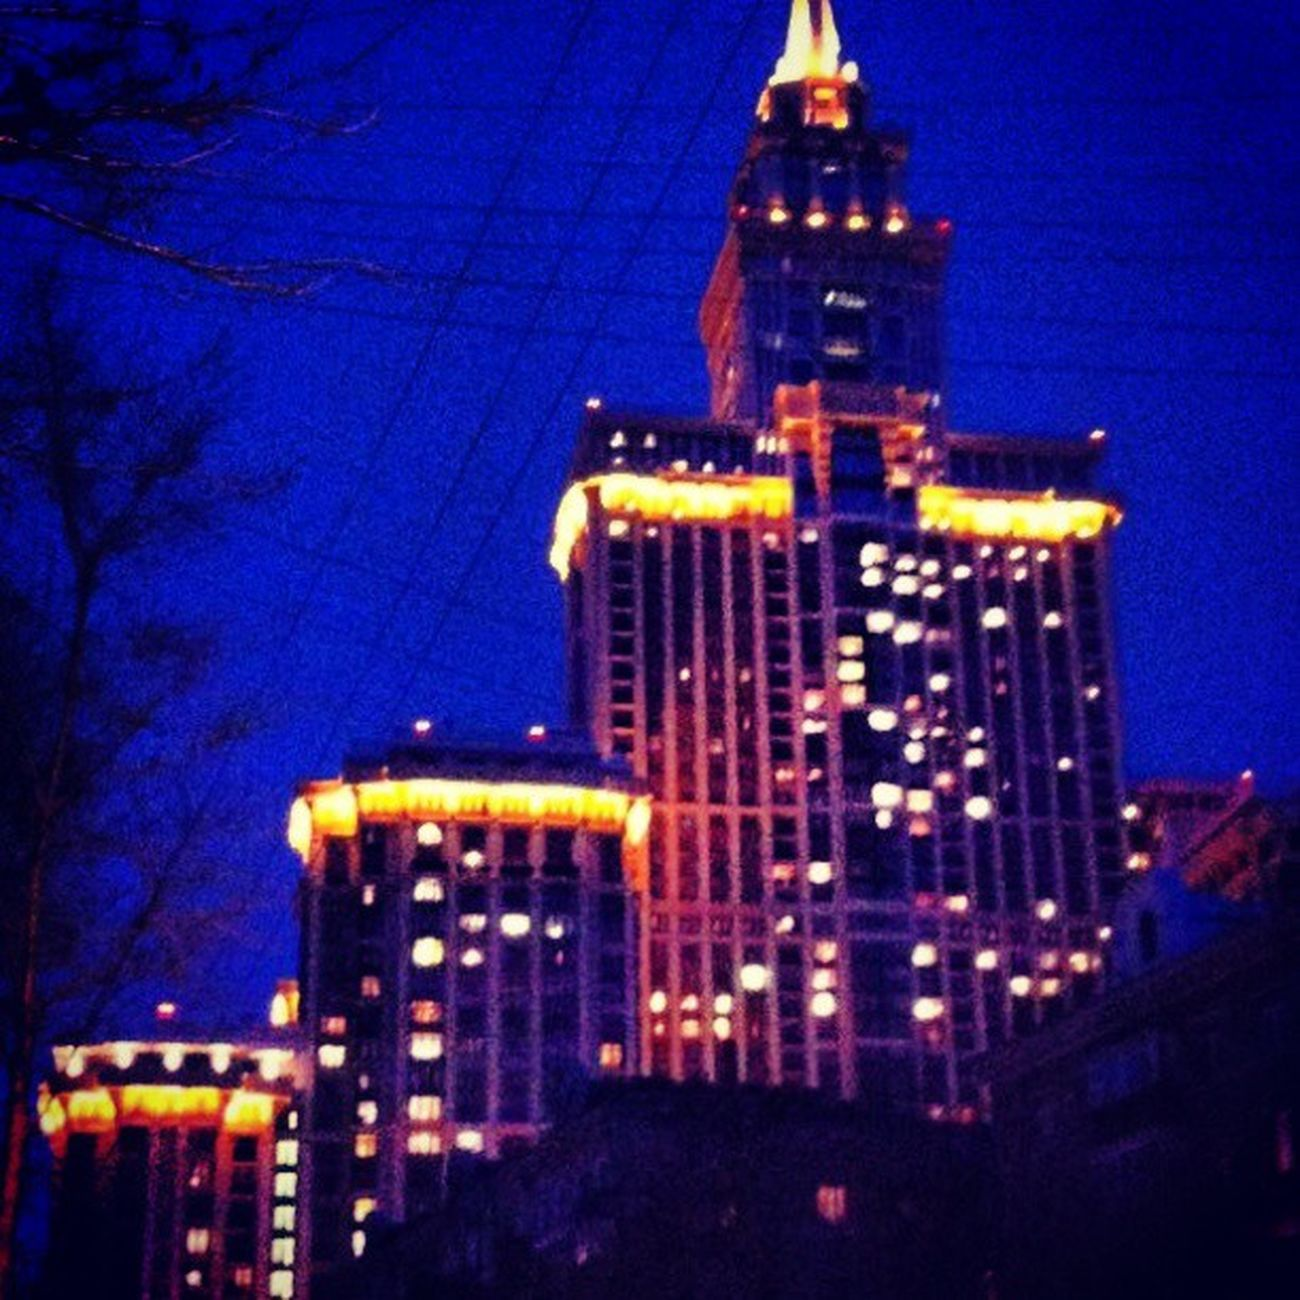 Triumphpalace Nightmoscow Night SOKOL Photo